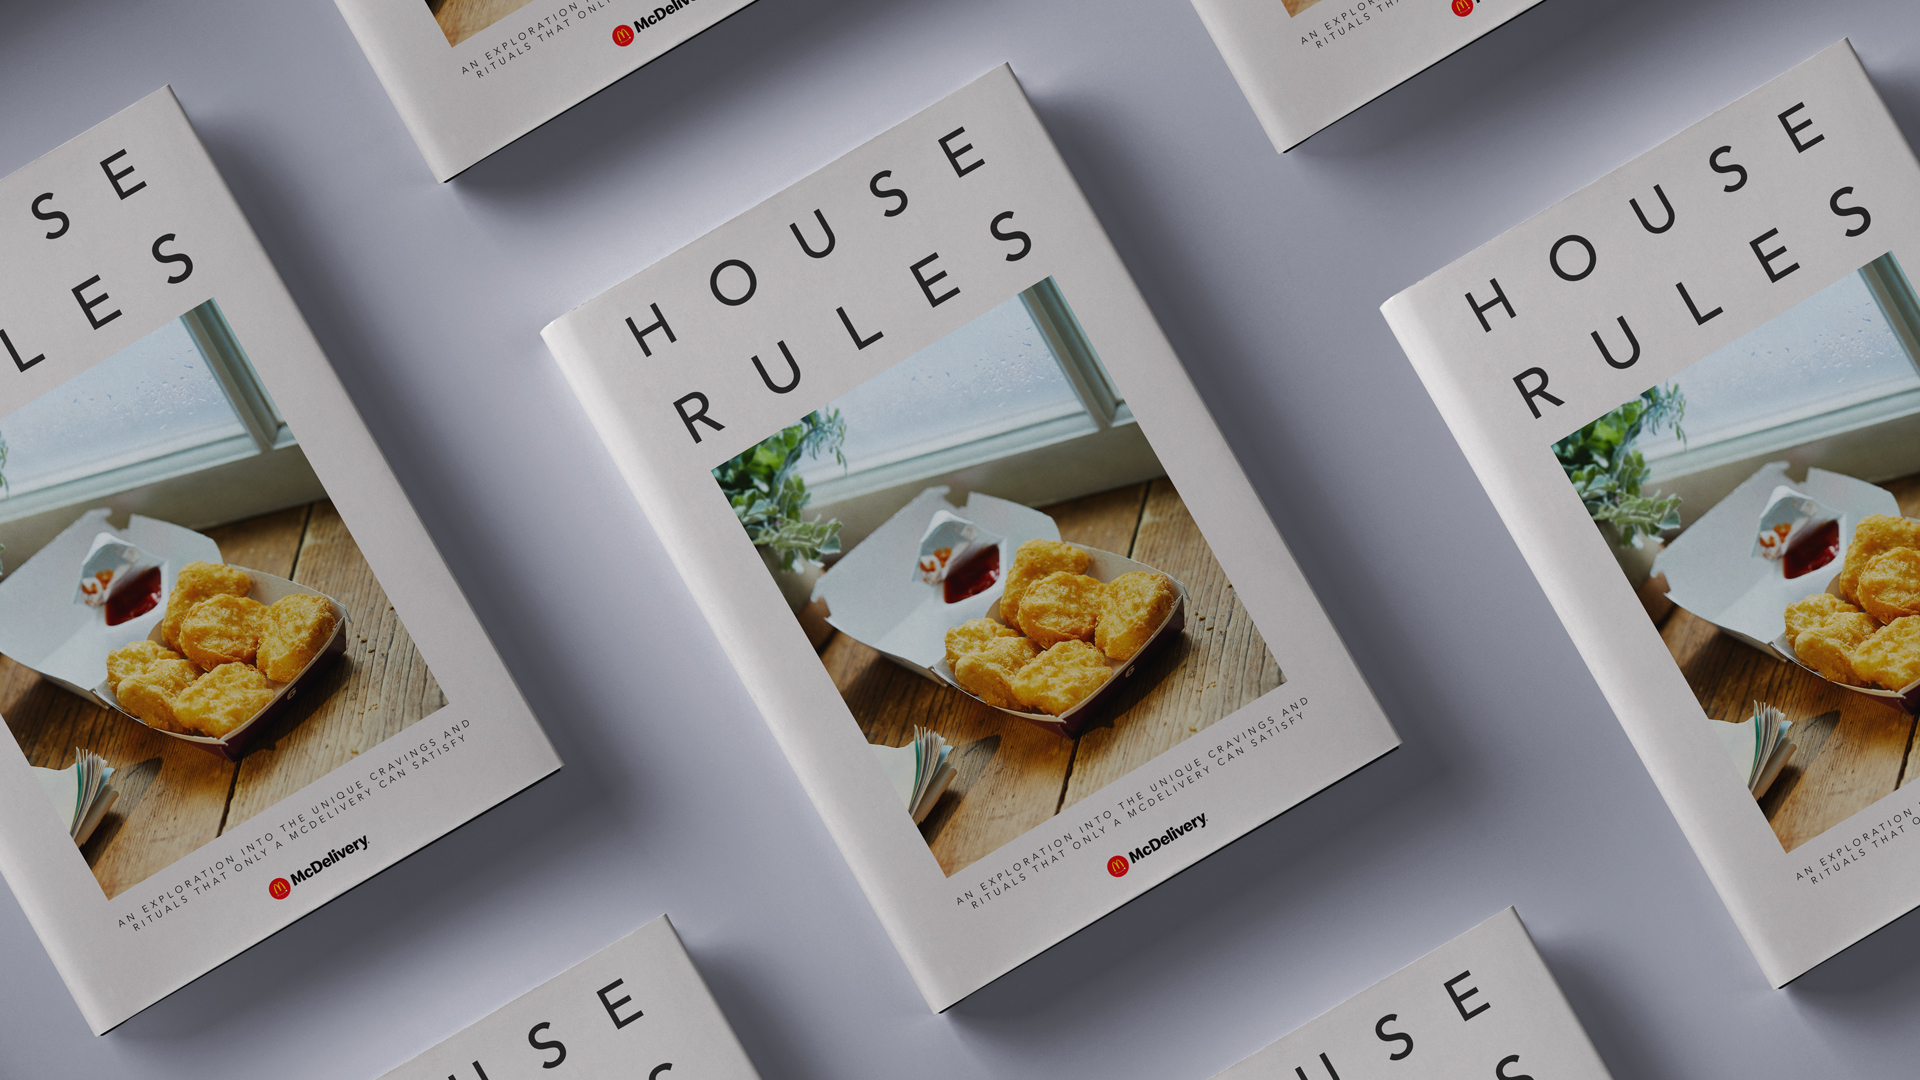 'House Rules'